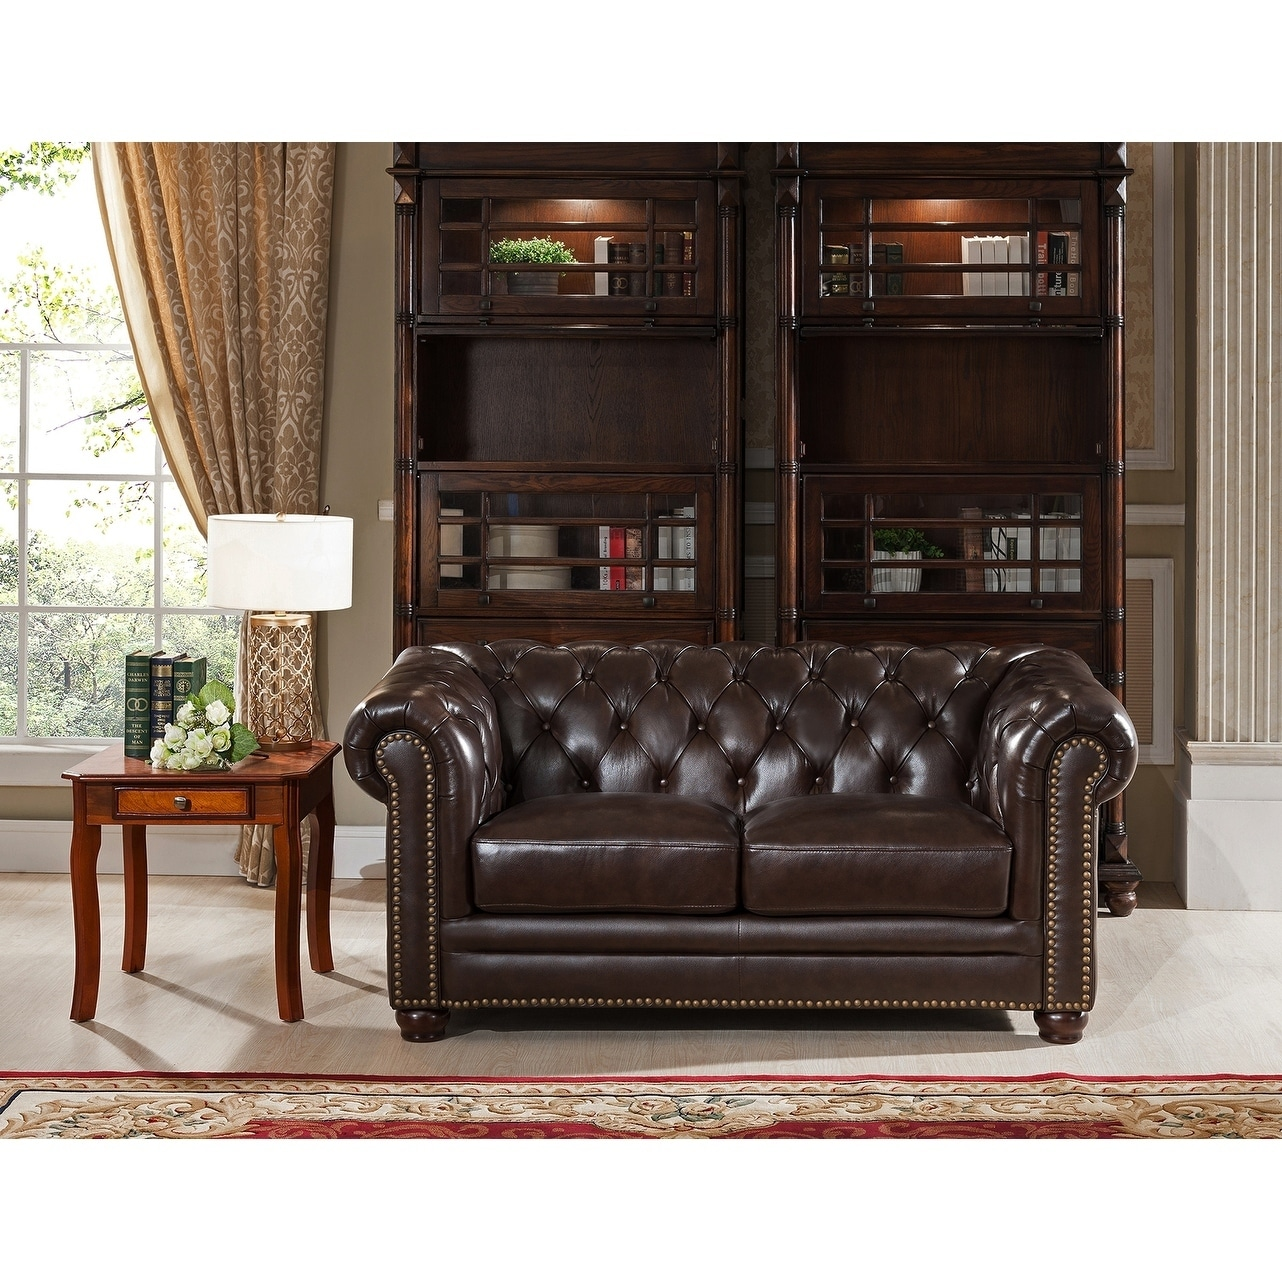 c3abbedb0b56 Kensington Top Grain Leather Chesterfield Loveseat With Feather